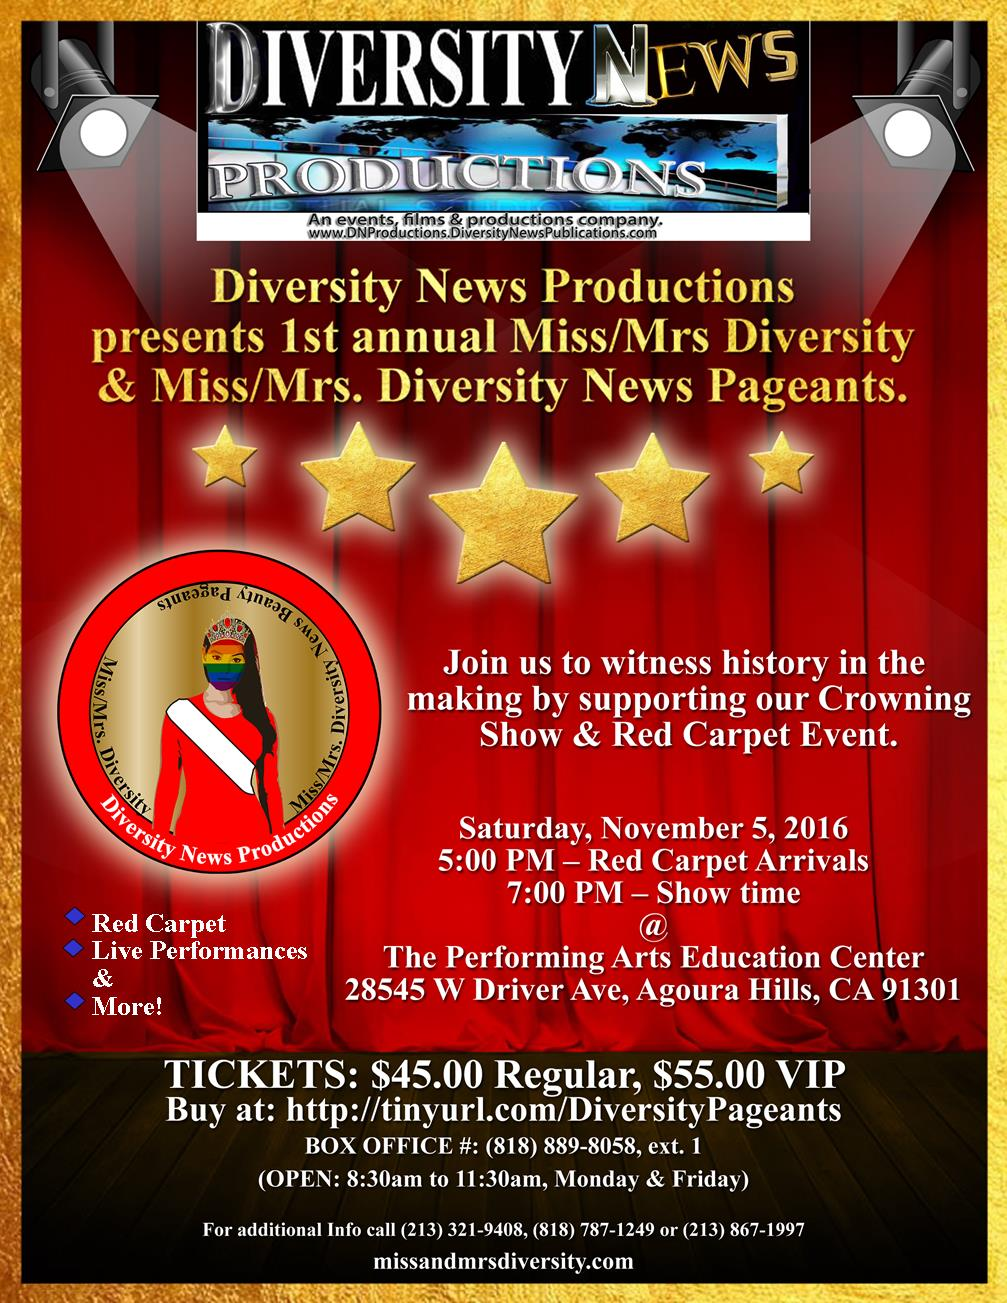 Diversity News Productions presents it's 1st annual Ms. Diversity & Ms. Diversity News Beauty Pageants Set for November 5, 2016.